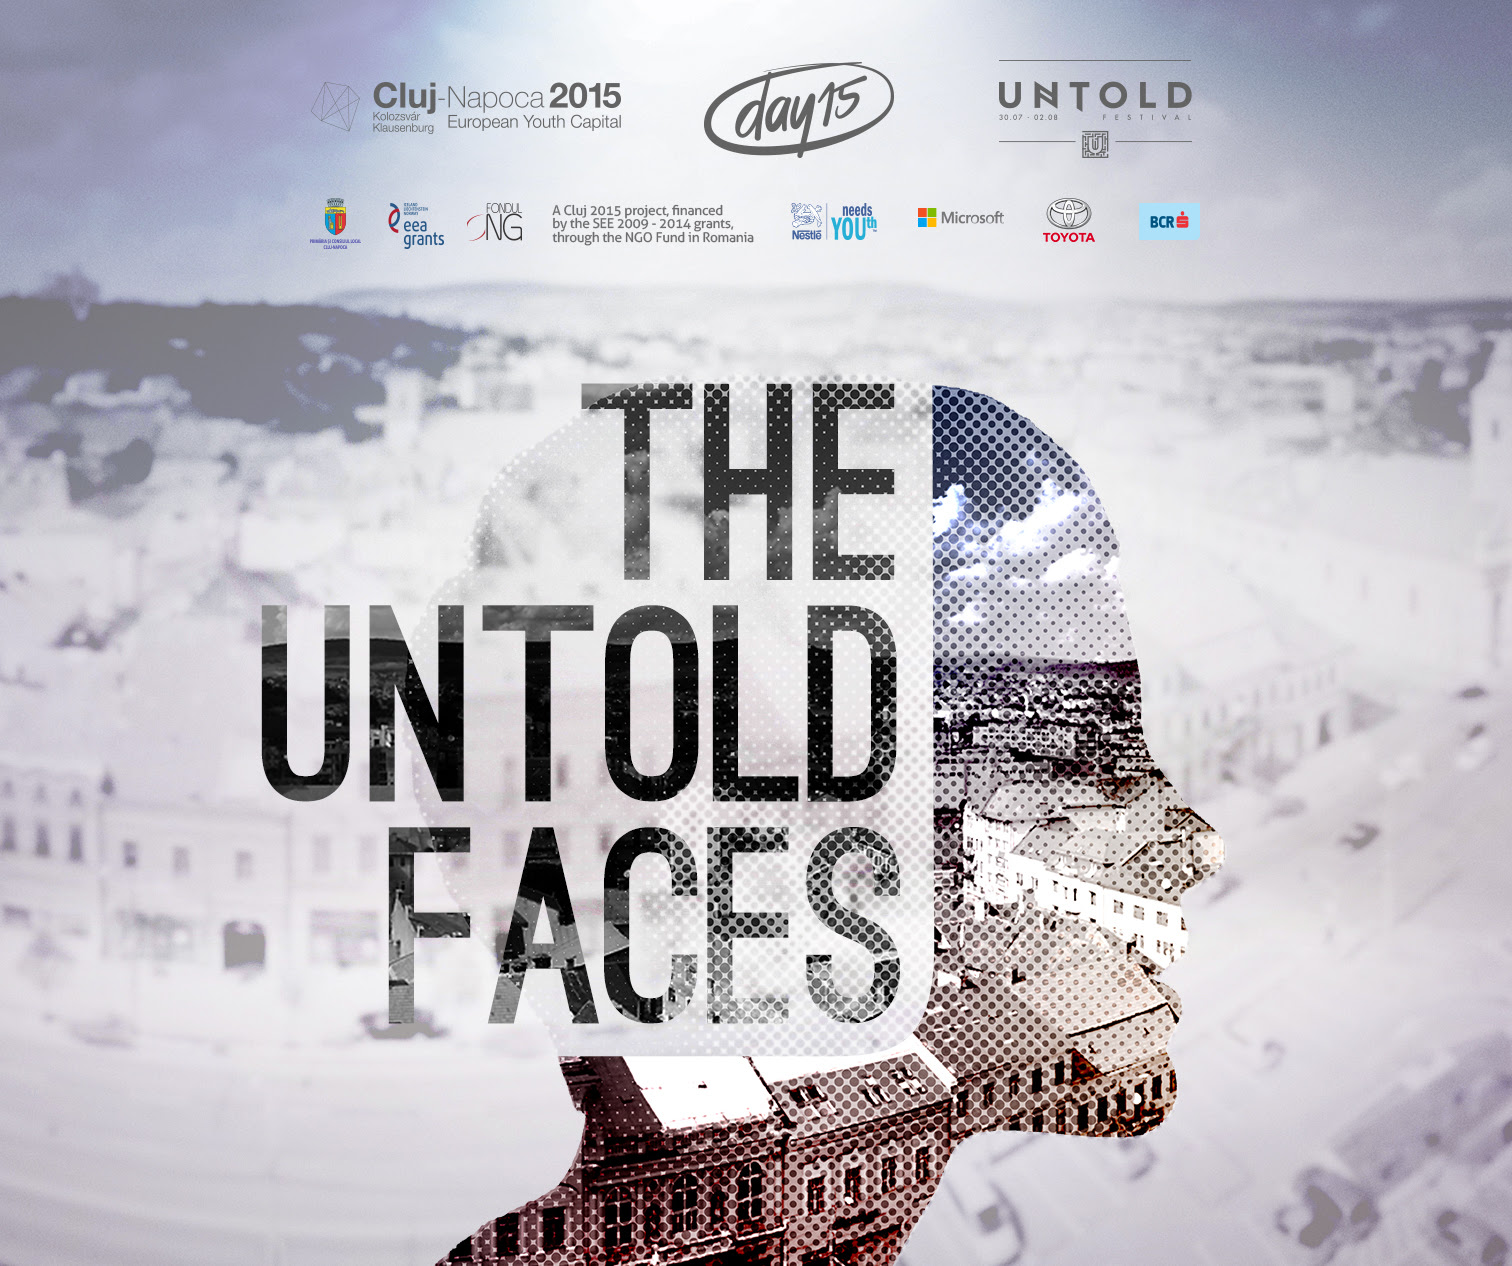 Day 15: The Untold Faces